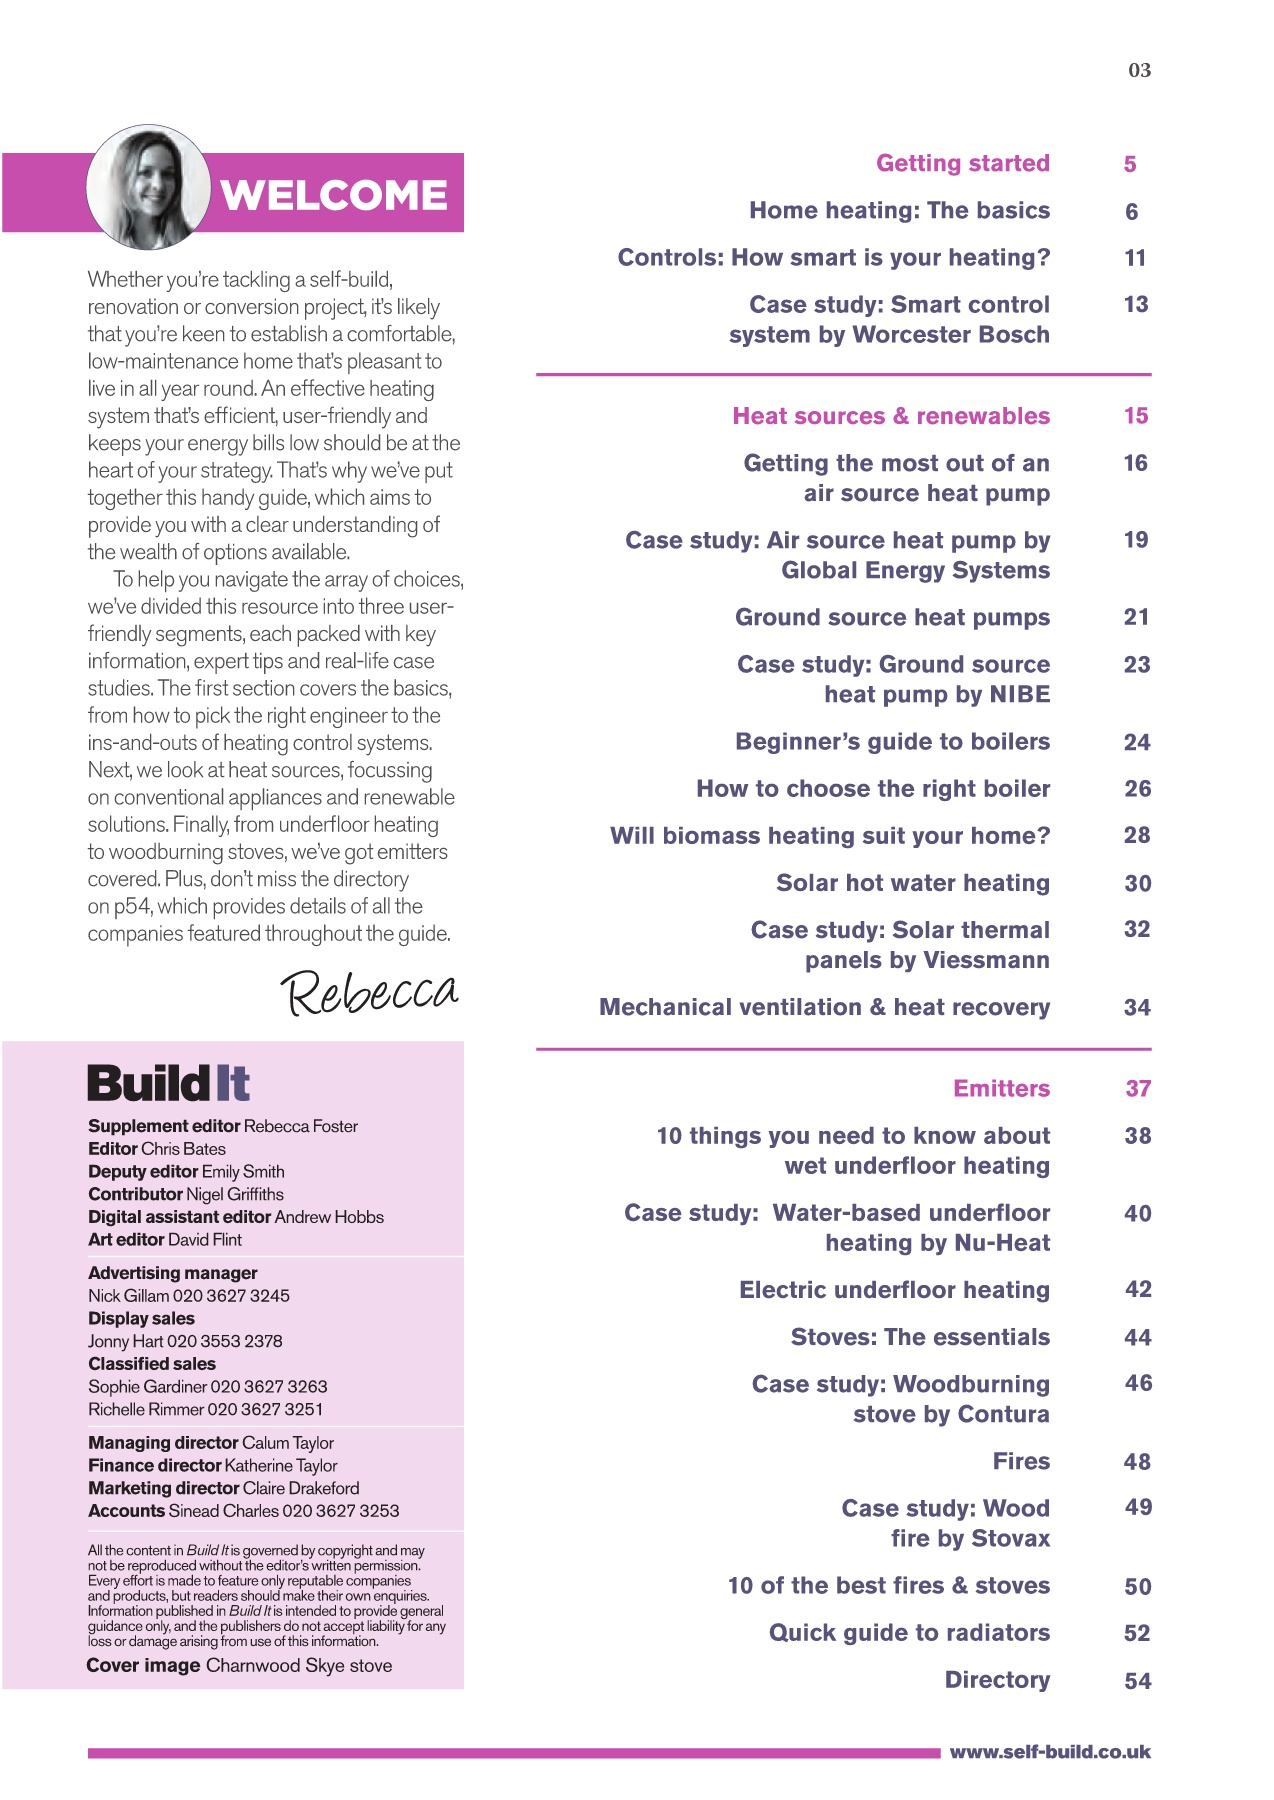 hight resolution of bi heating supplement 2017lores combined pages 1 50 text version anyflip